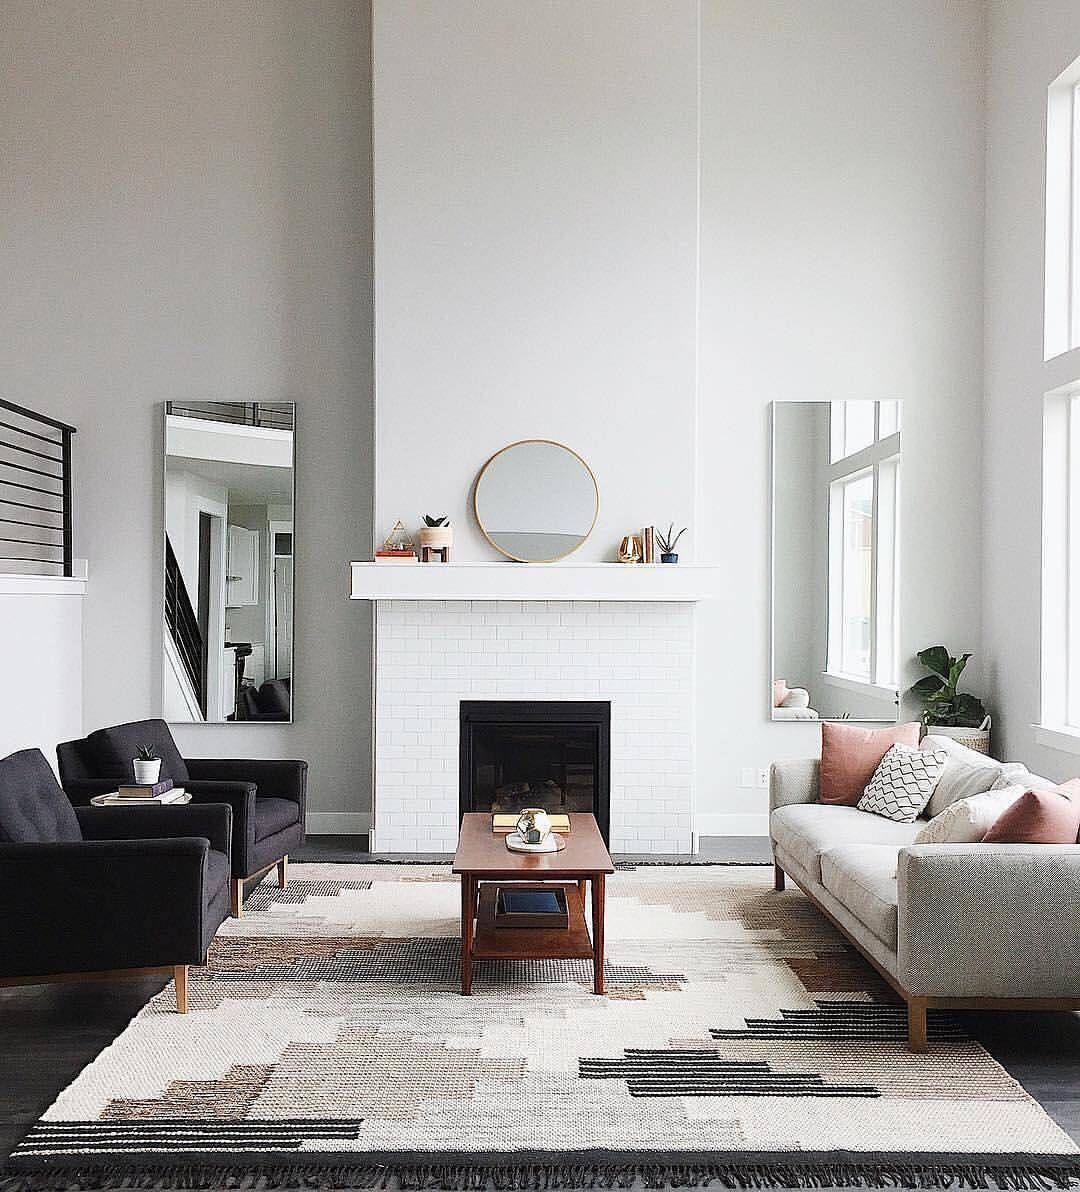 Mid Century Modern Living Room Style Is Born In The Period Between And Of Twentieth It Features Enhancements Organic Shapes